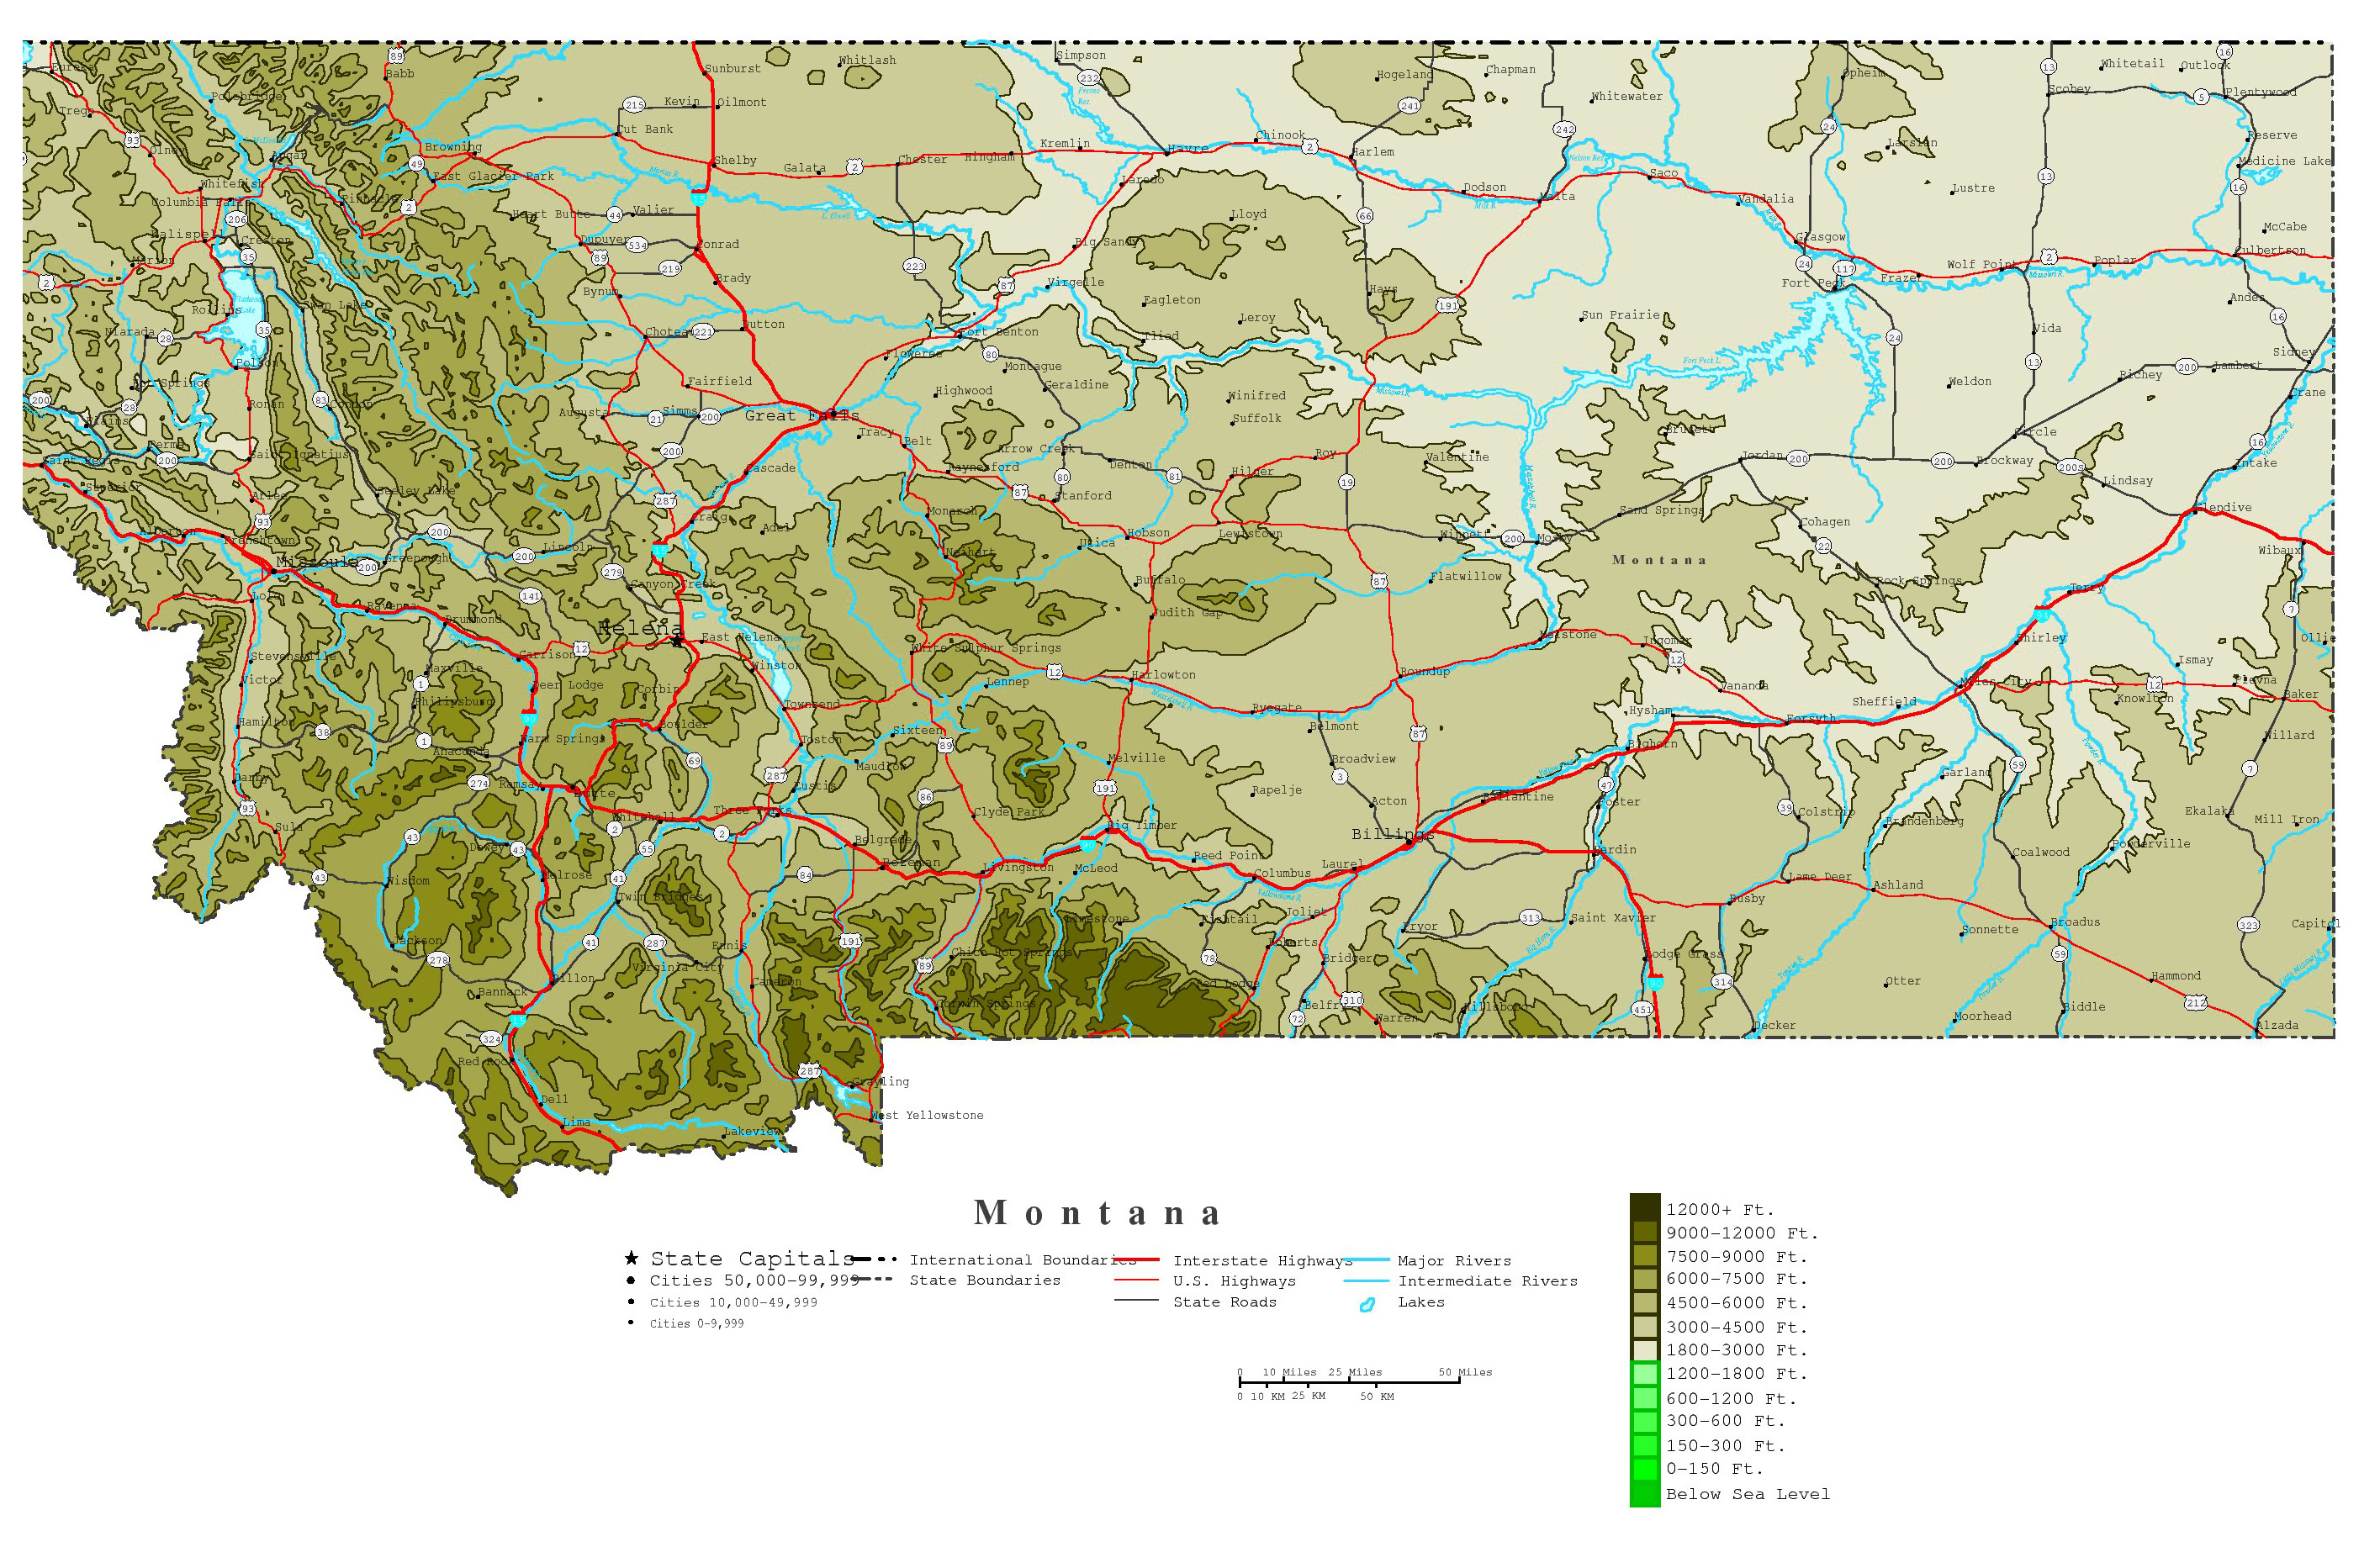 Large Detailed Elevation Map Of Montana State With Roads Highways - Montana map with cities